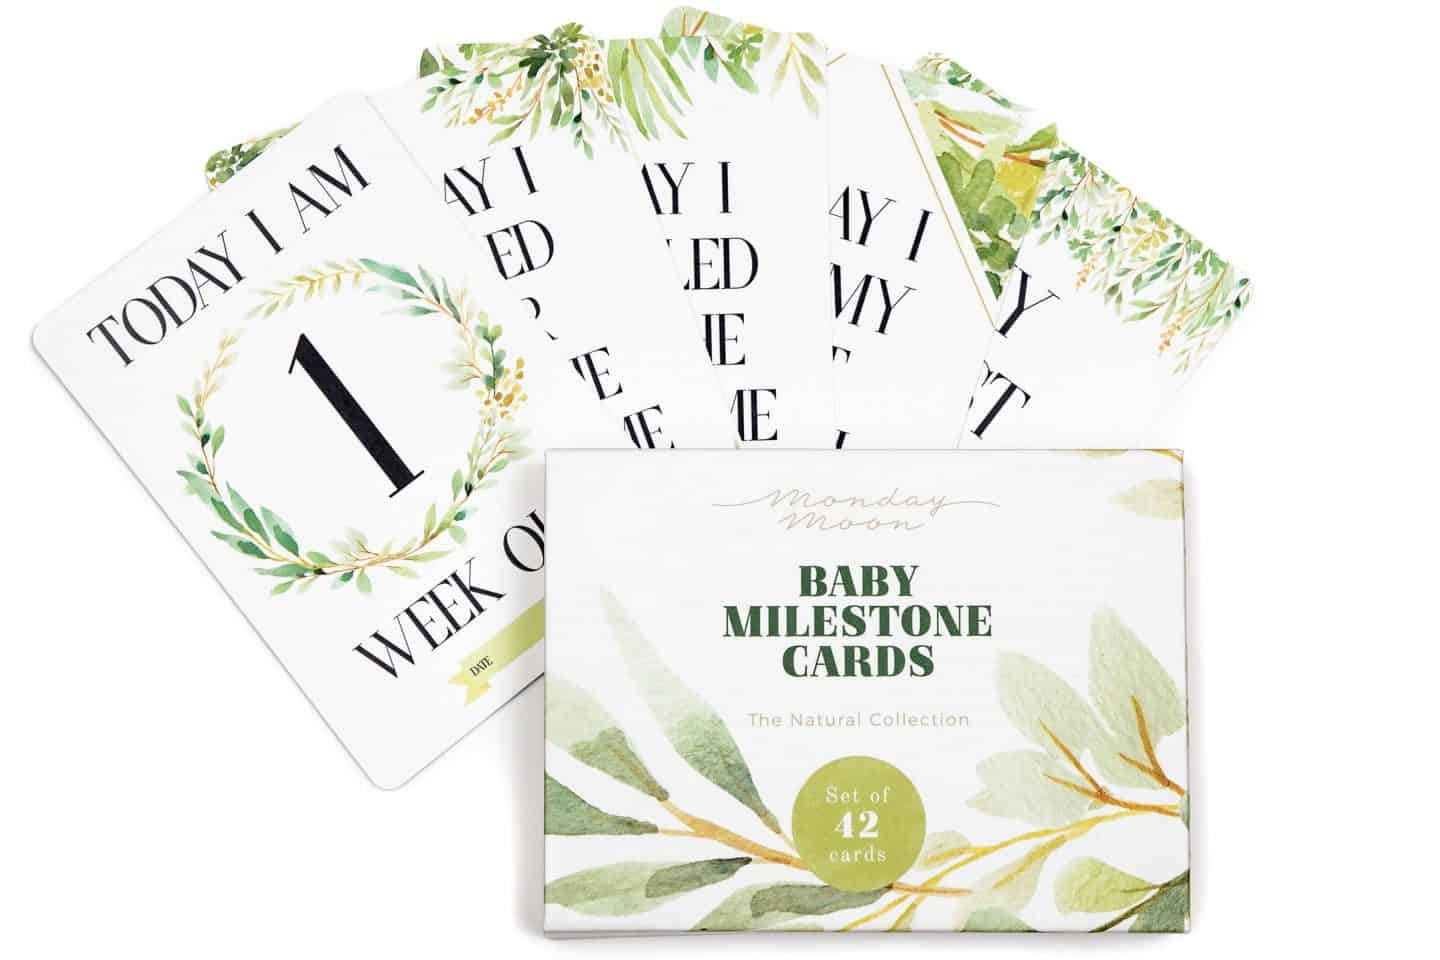 Monday Moon Baby Milestone Cards Review and Giveaway